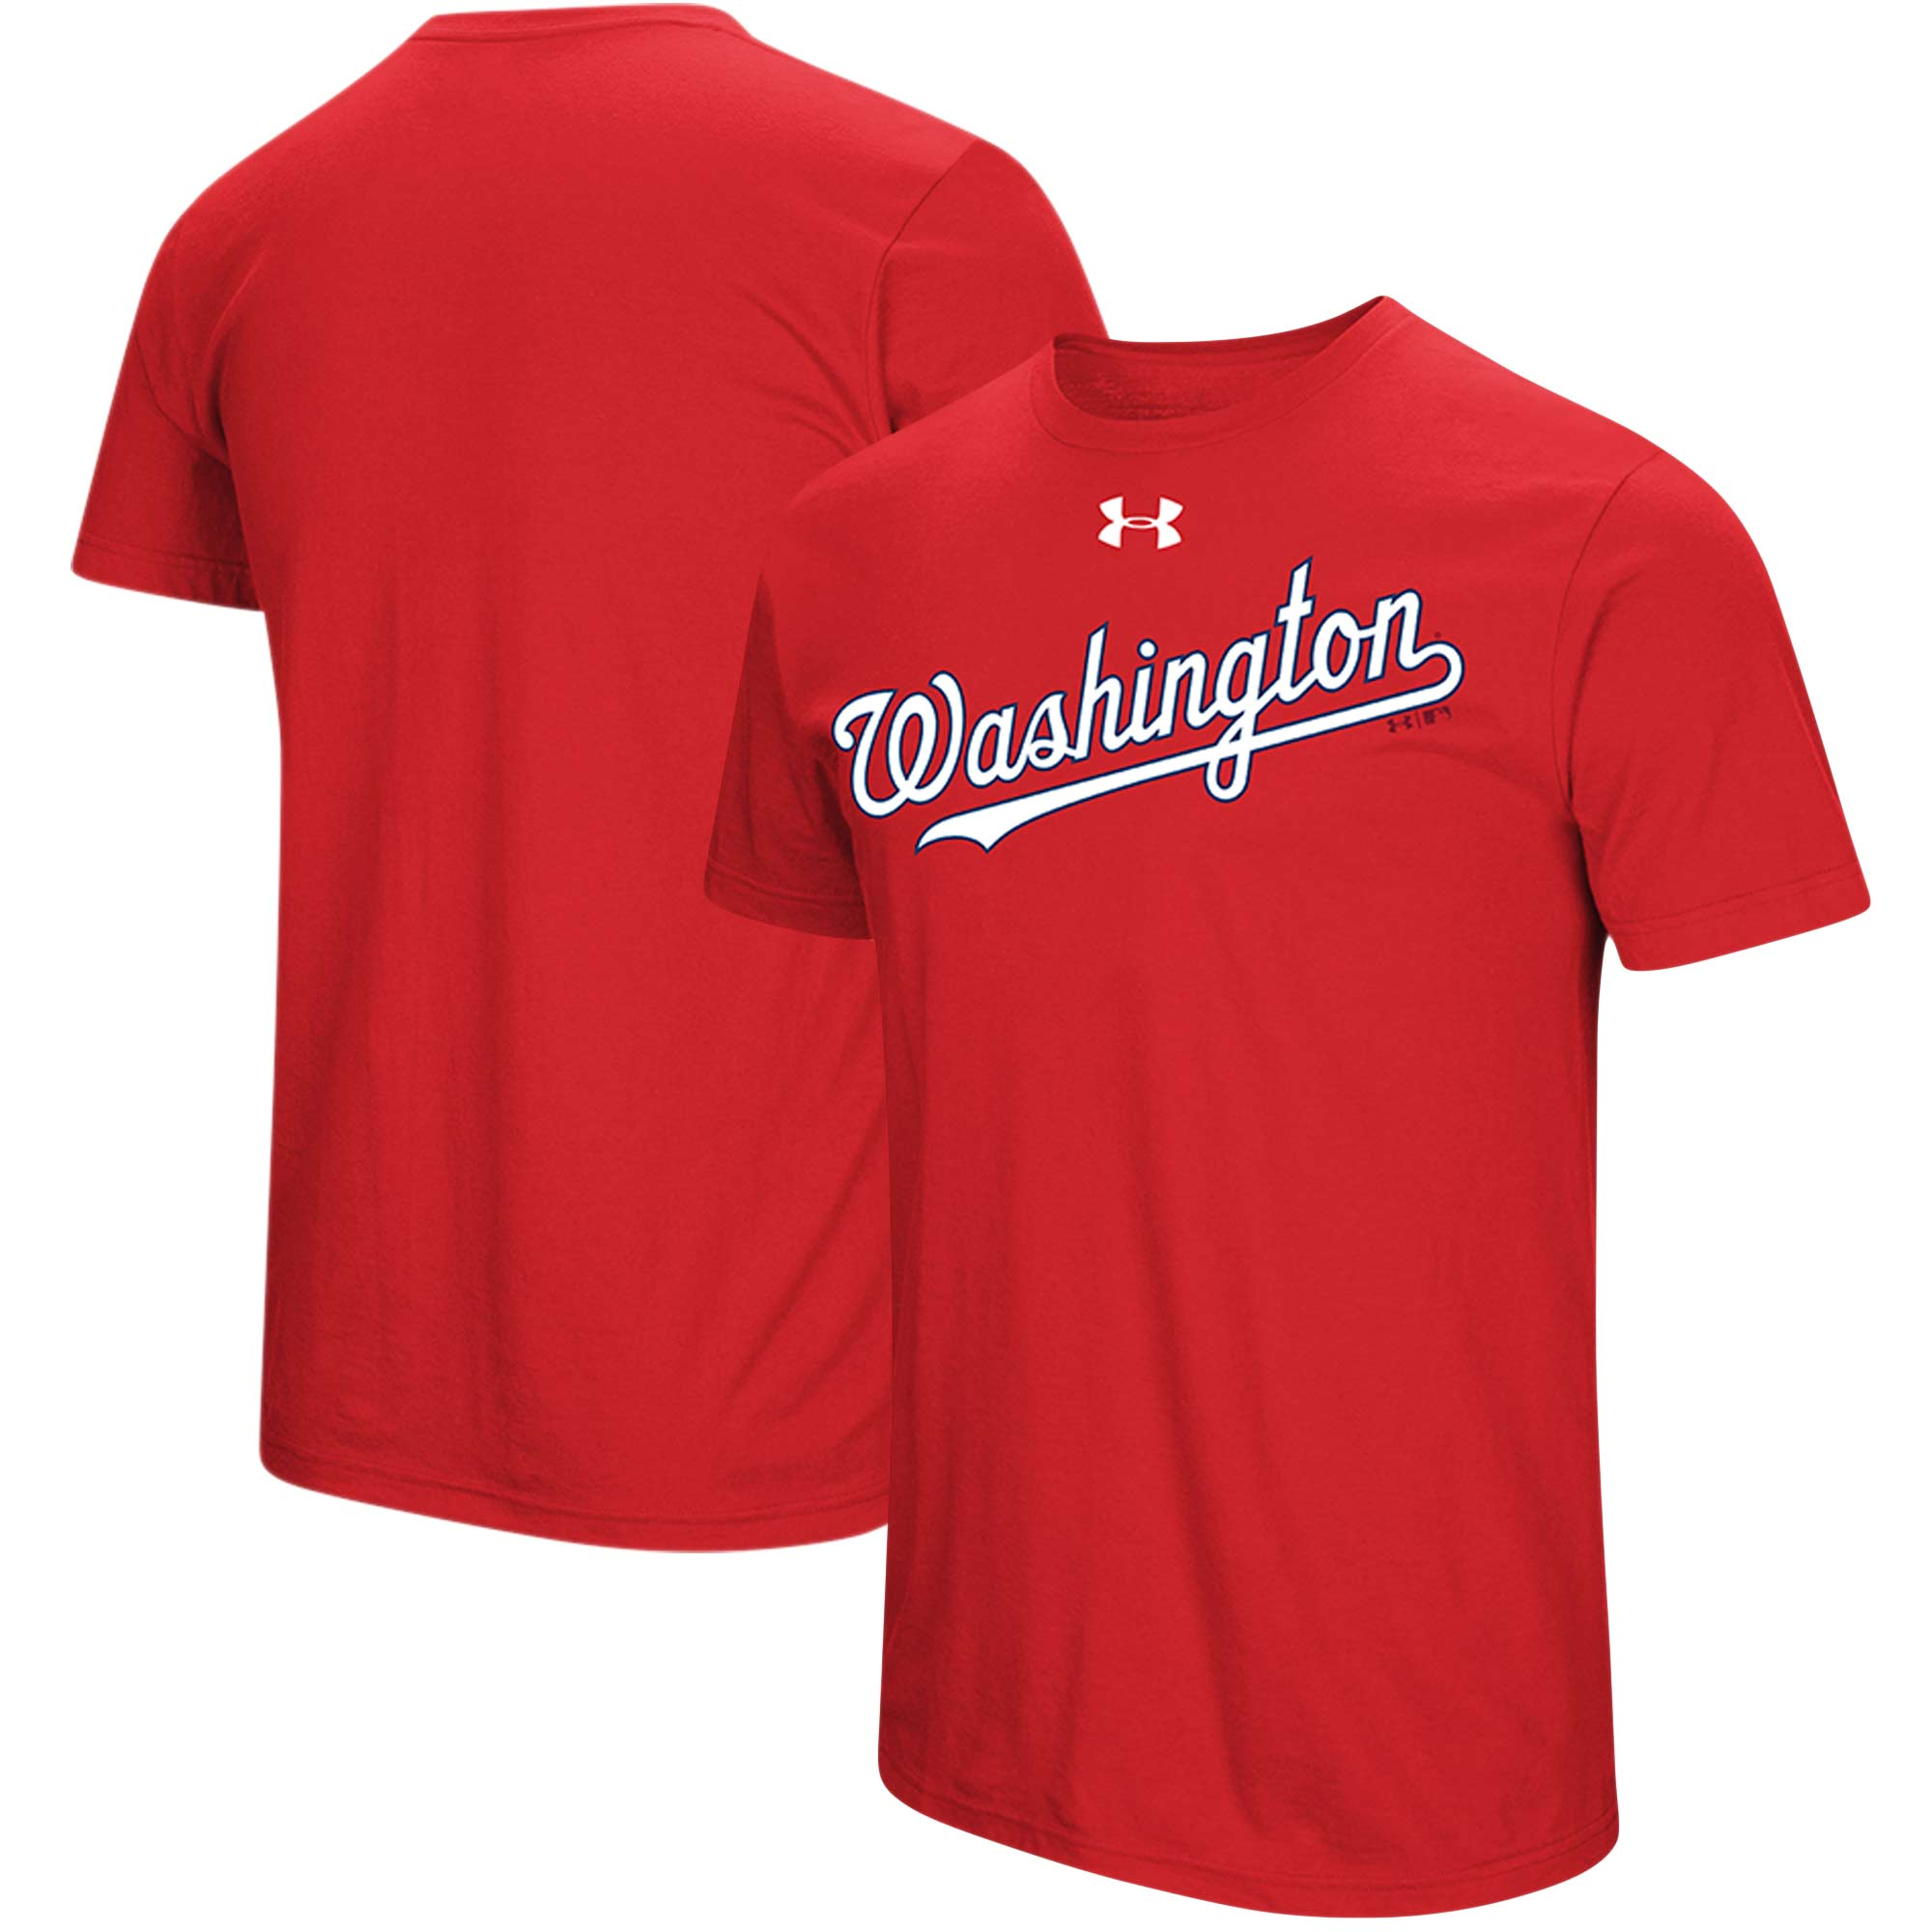 Washington Nationals Under Armour Passion Road Team Font T-Shirt - Red